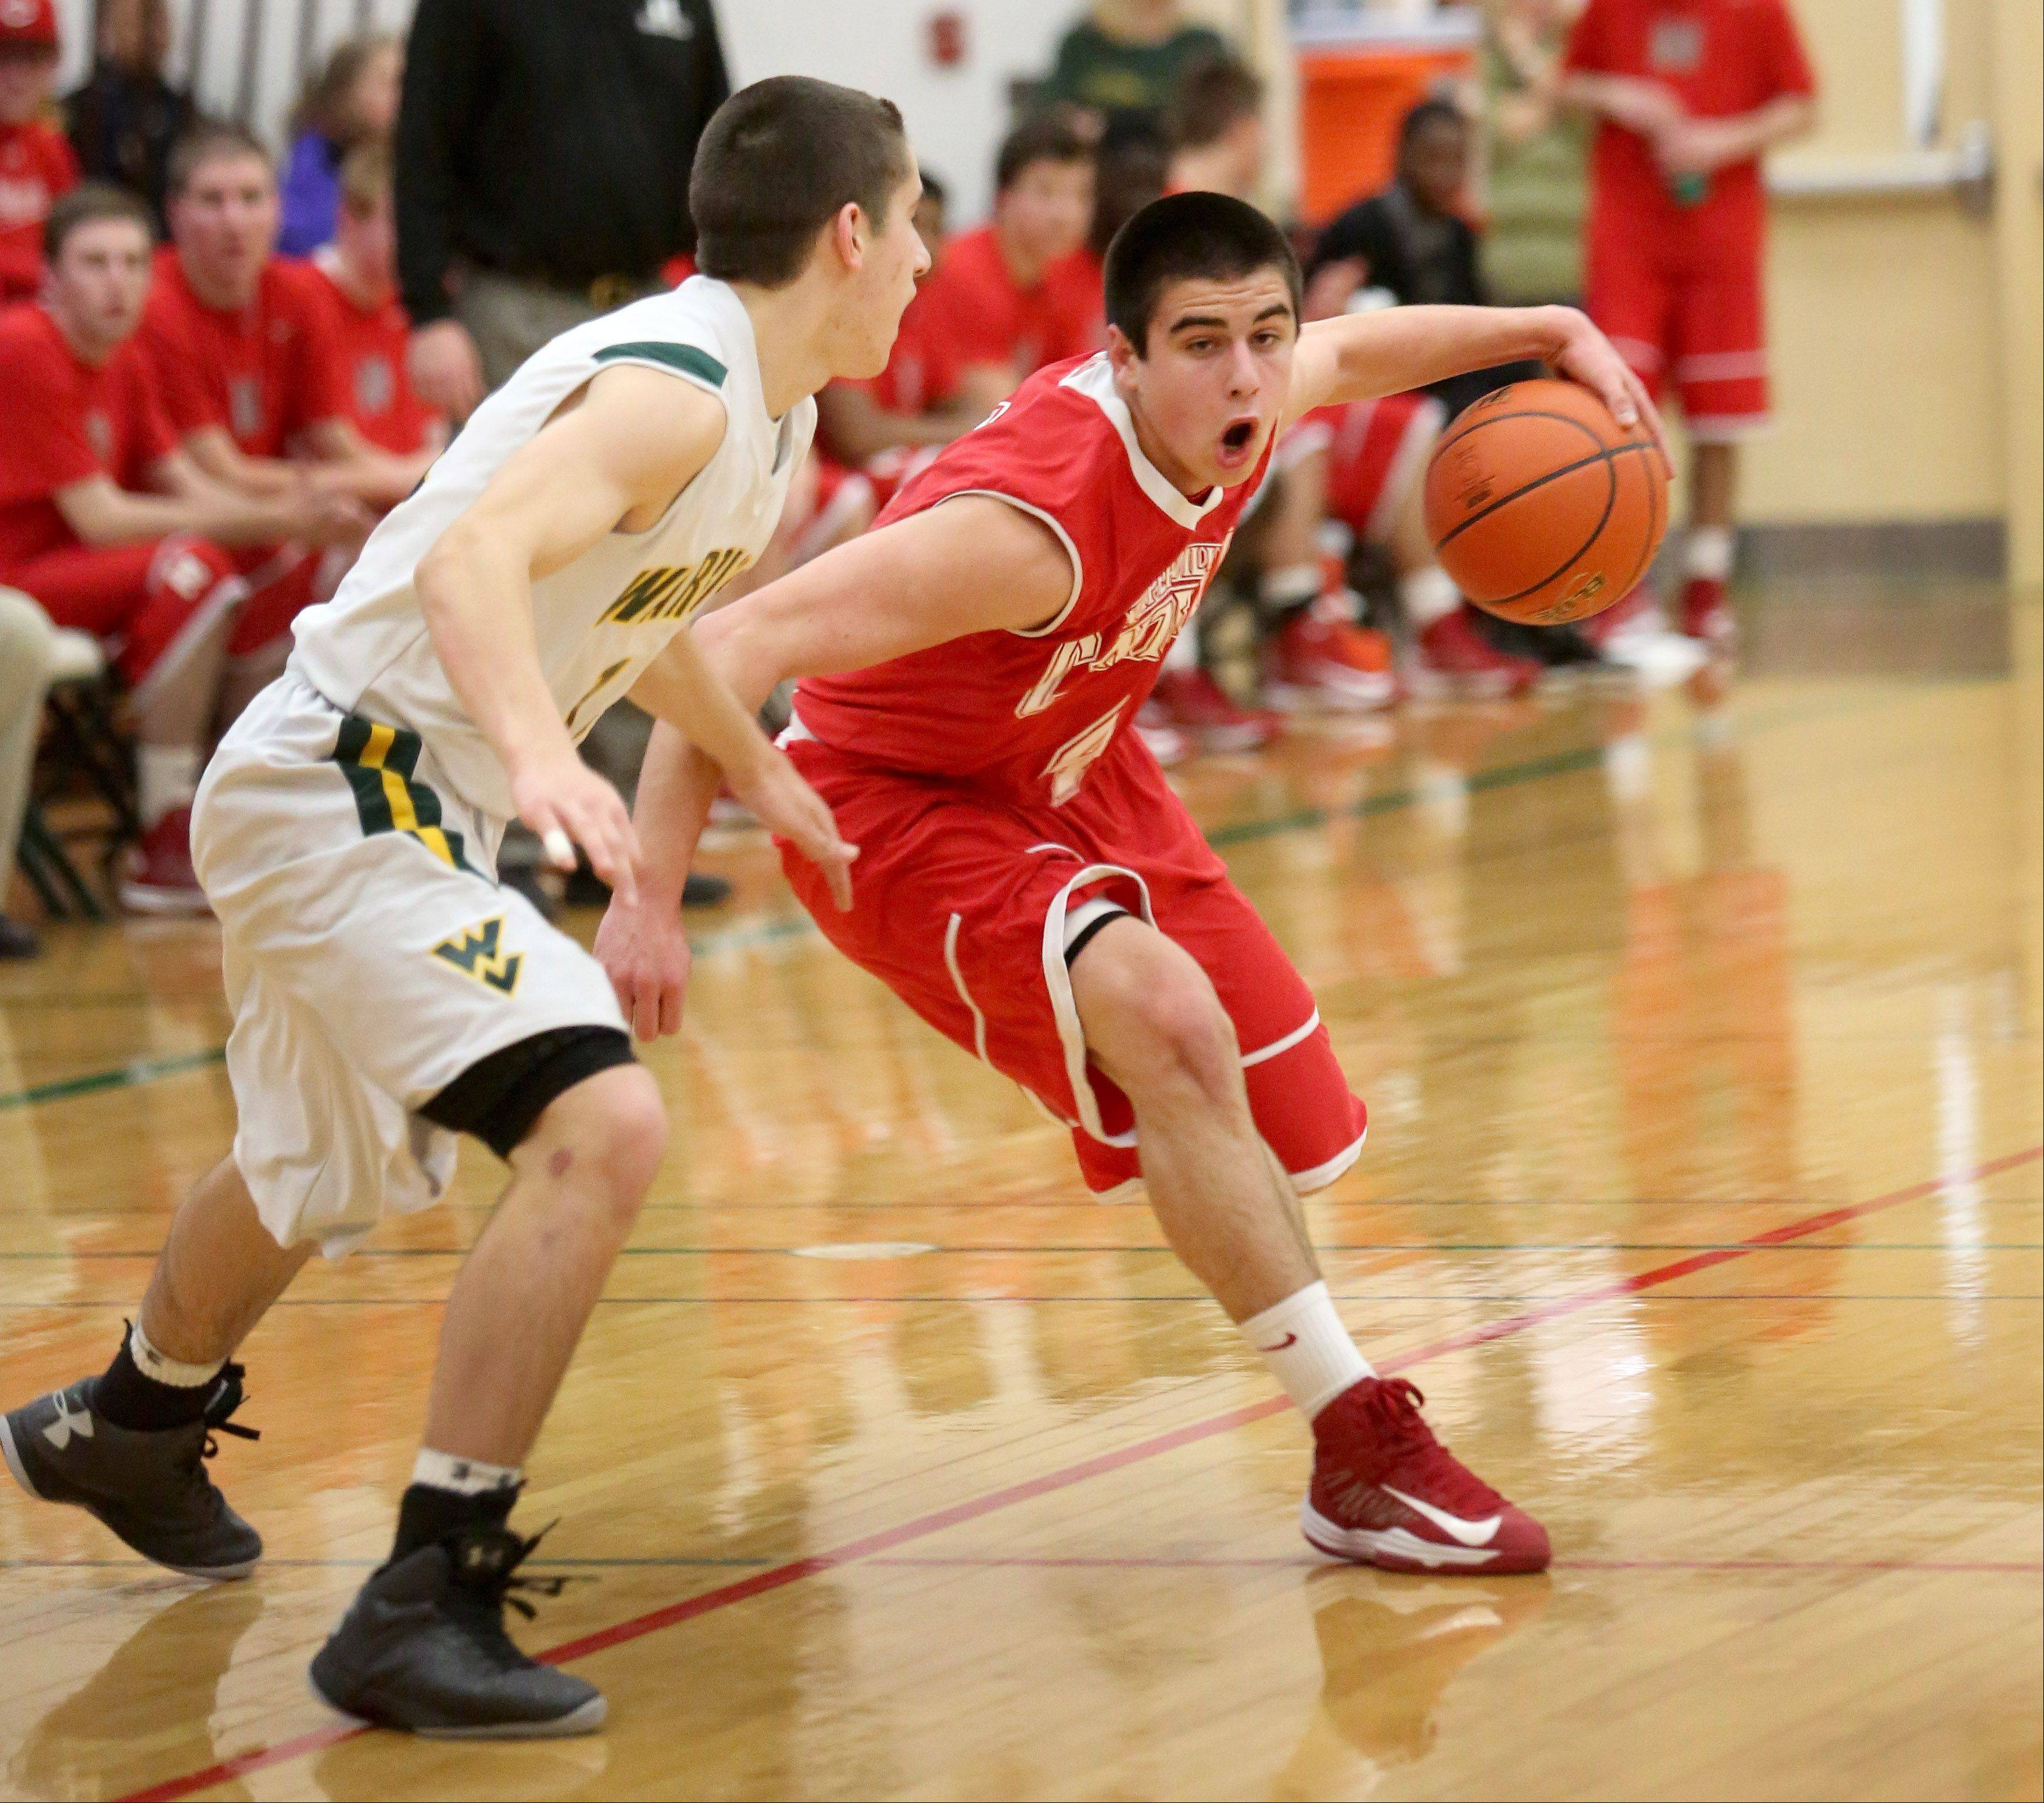 Images: Naperville Central vs. Waubonsie Valley, boys basketball